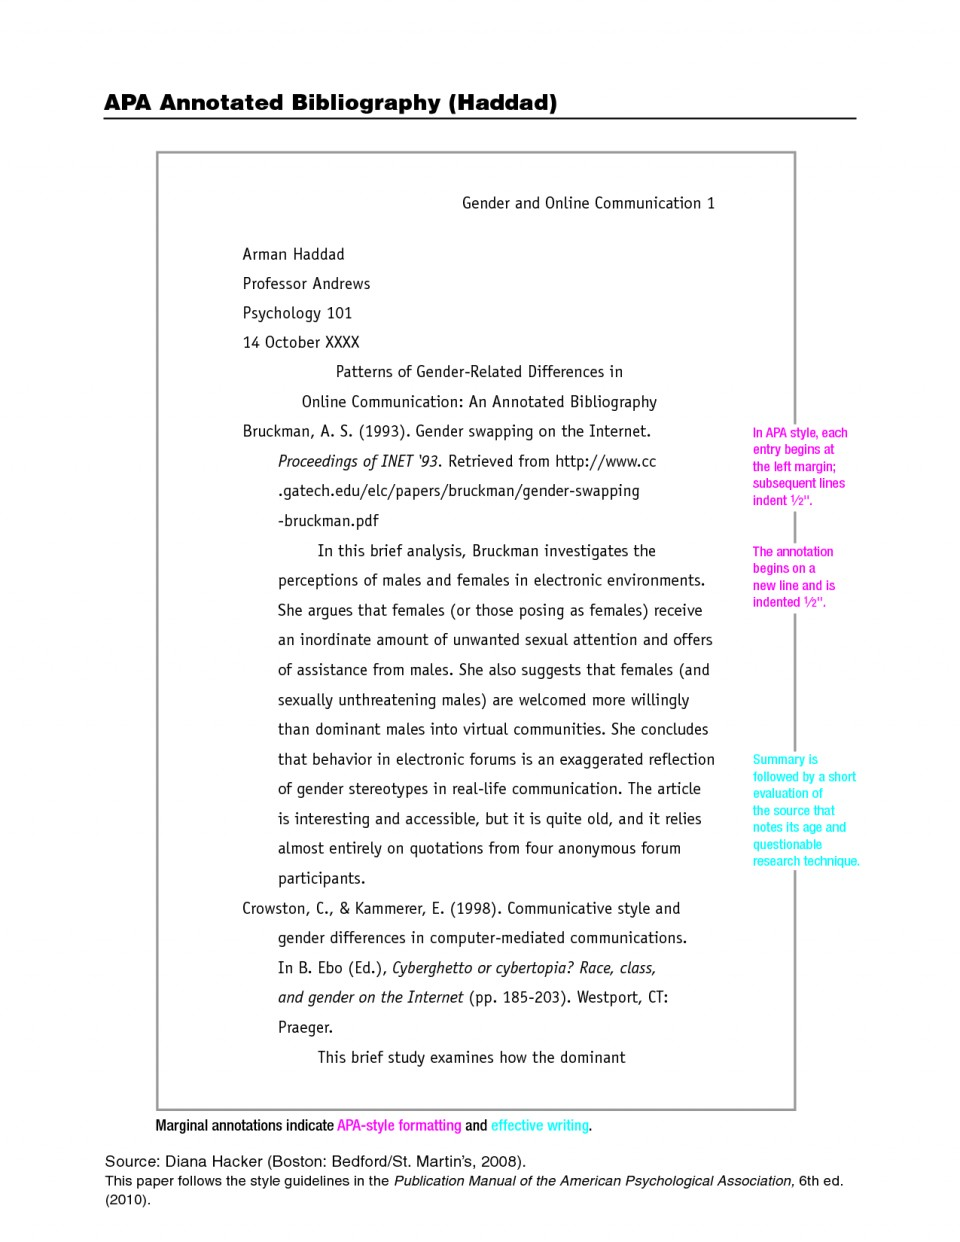 015 Research Paper How To Write Good Fast 1198784868 Unusual A 3 Page On Food 960